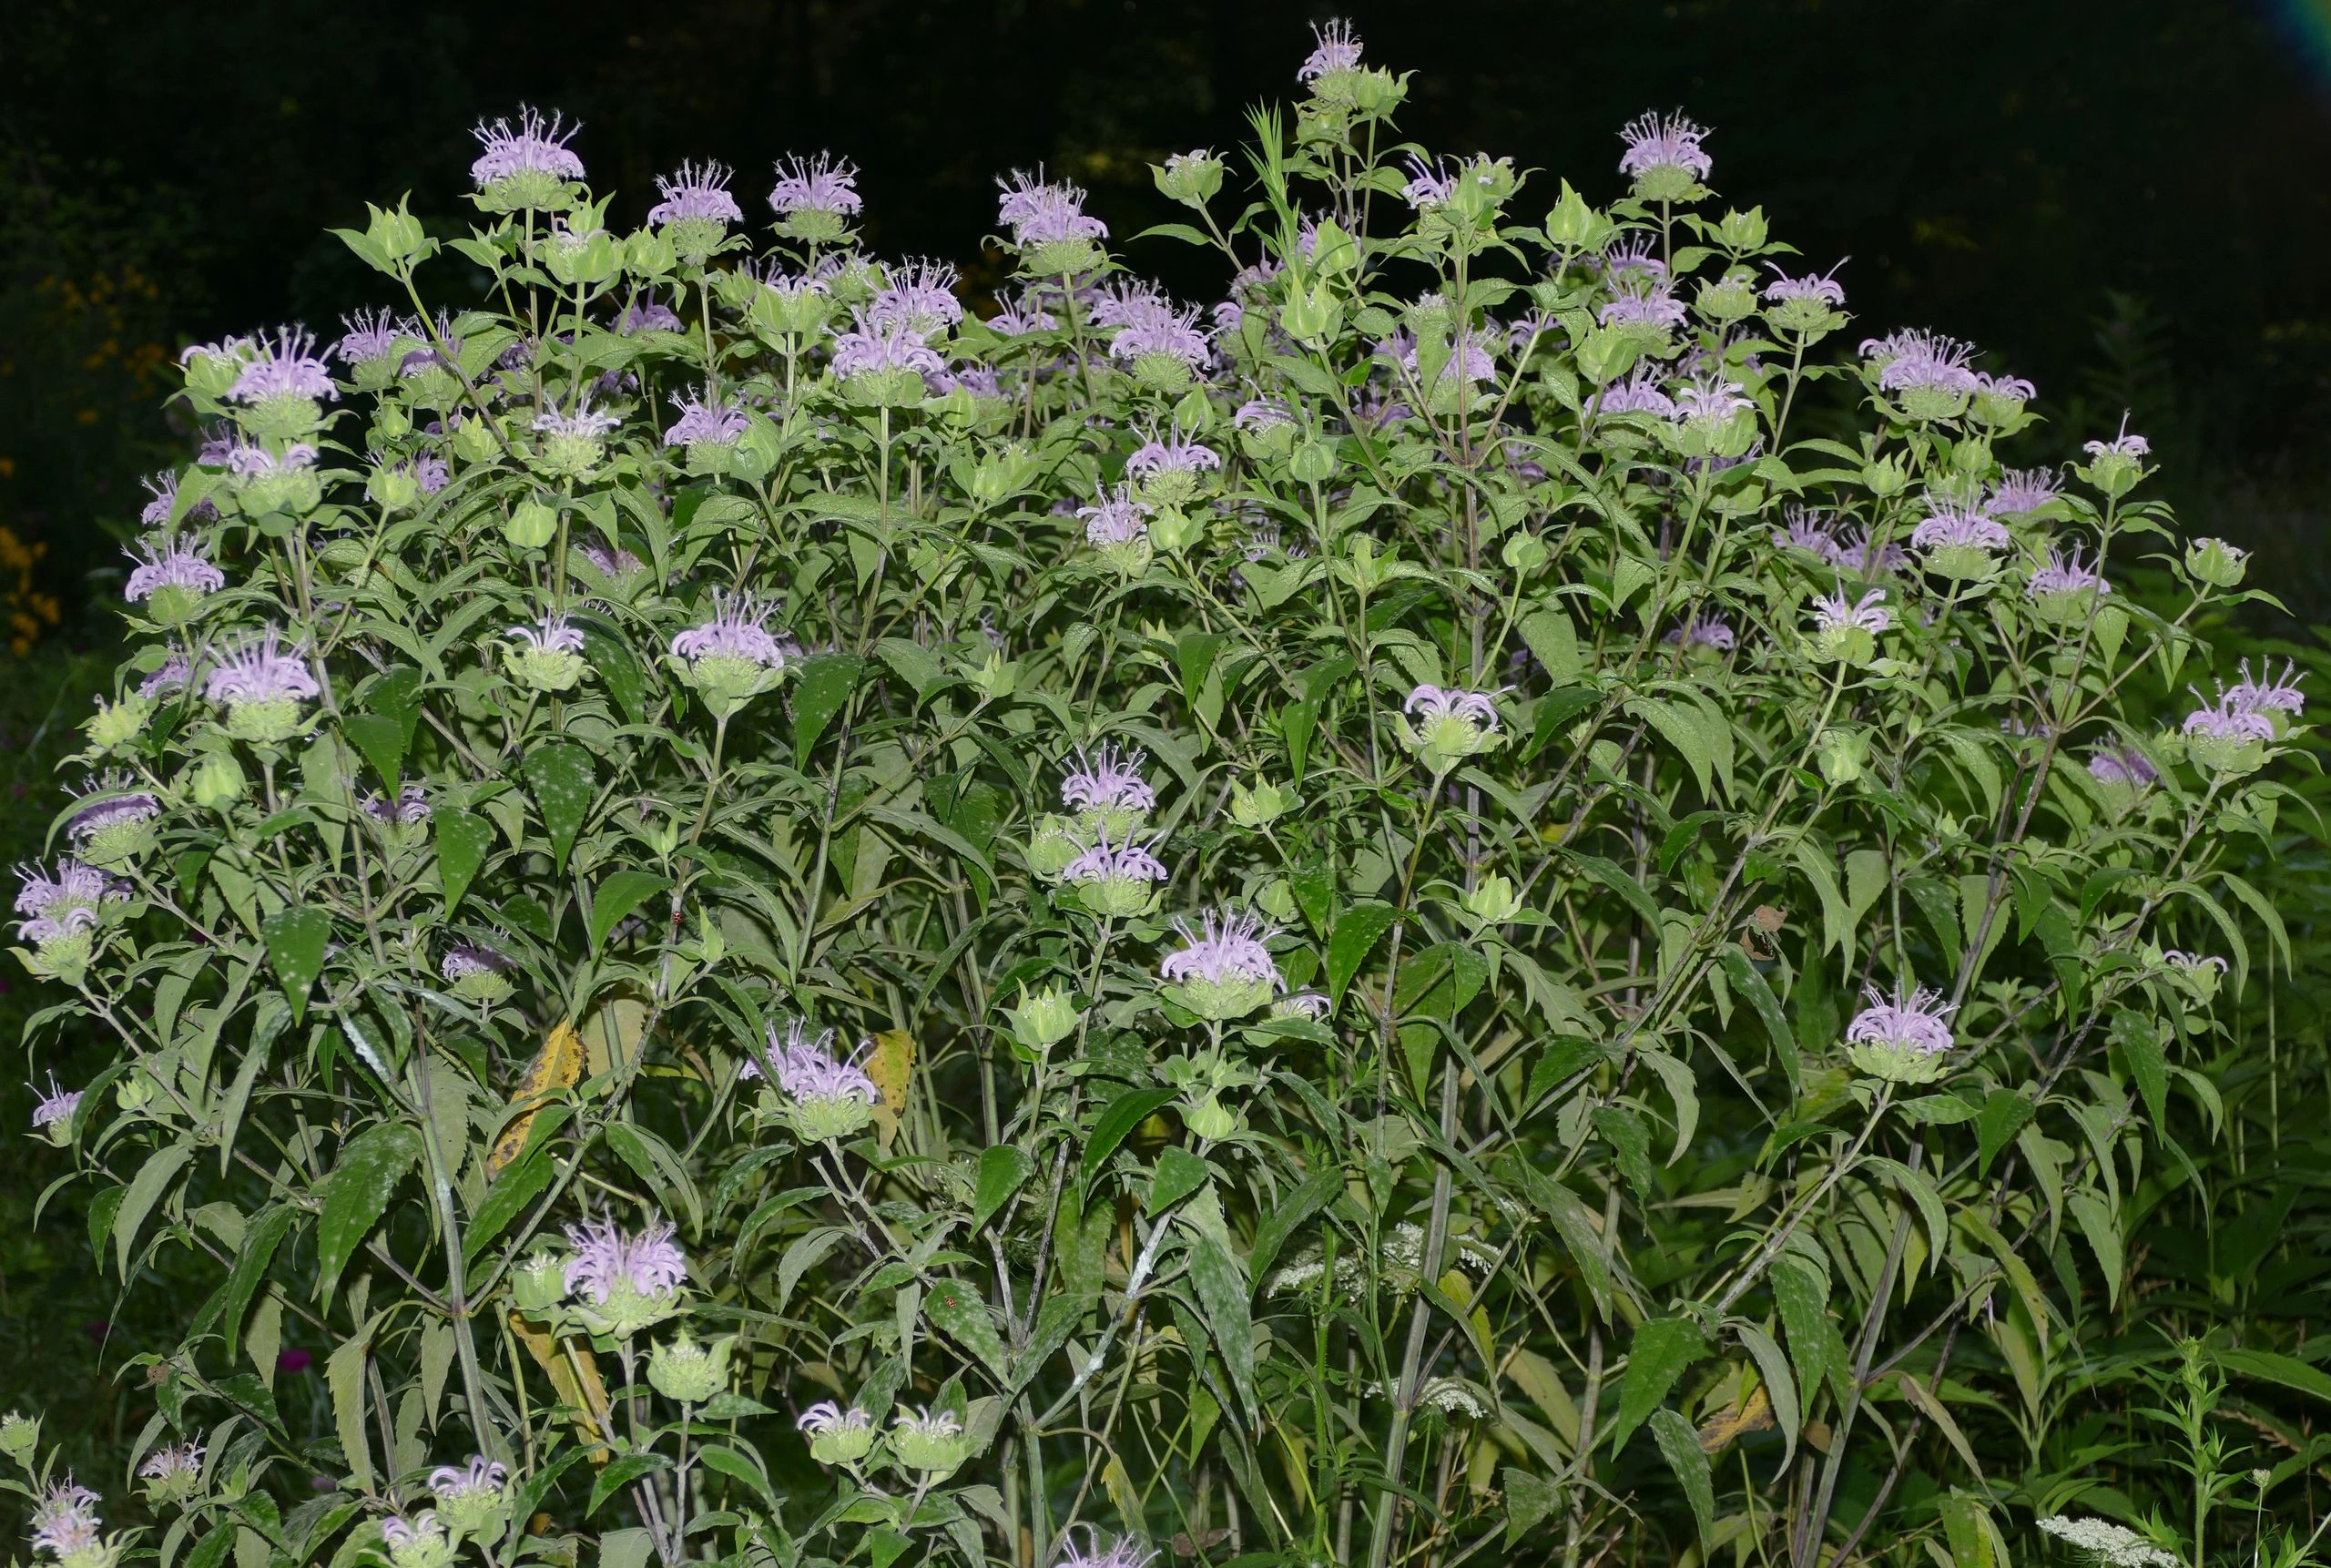 "{""blocks"":[{""key"":""66cq0"",""text"":""Monarda fistulosa Wild Bergamot Beebalm - potted plants email john@easywildflowers.com"",""type"":""unstyled"",""depth"":0,""inlineStyleRanges"":[],""entityRanges"":[],""data"":{}}],""entityMap"":{}}"